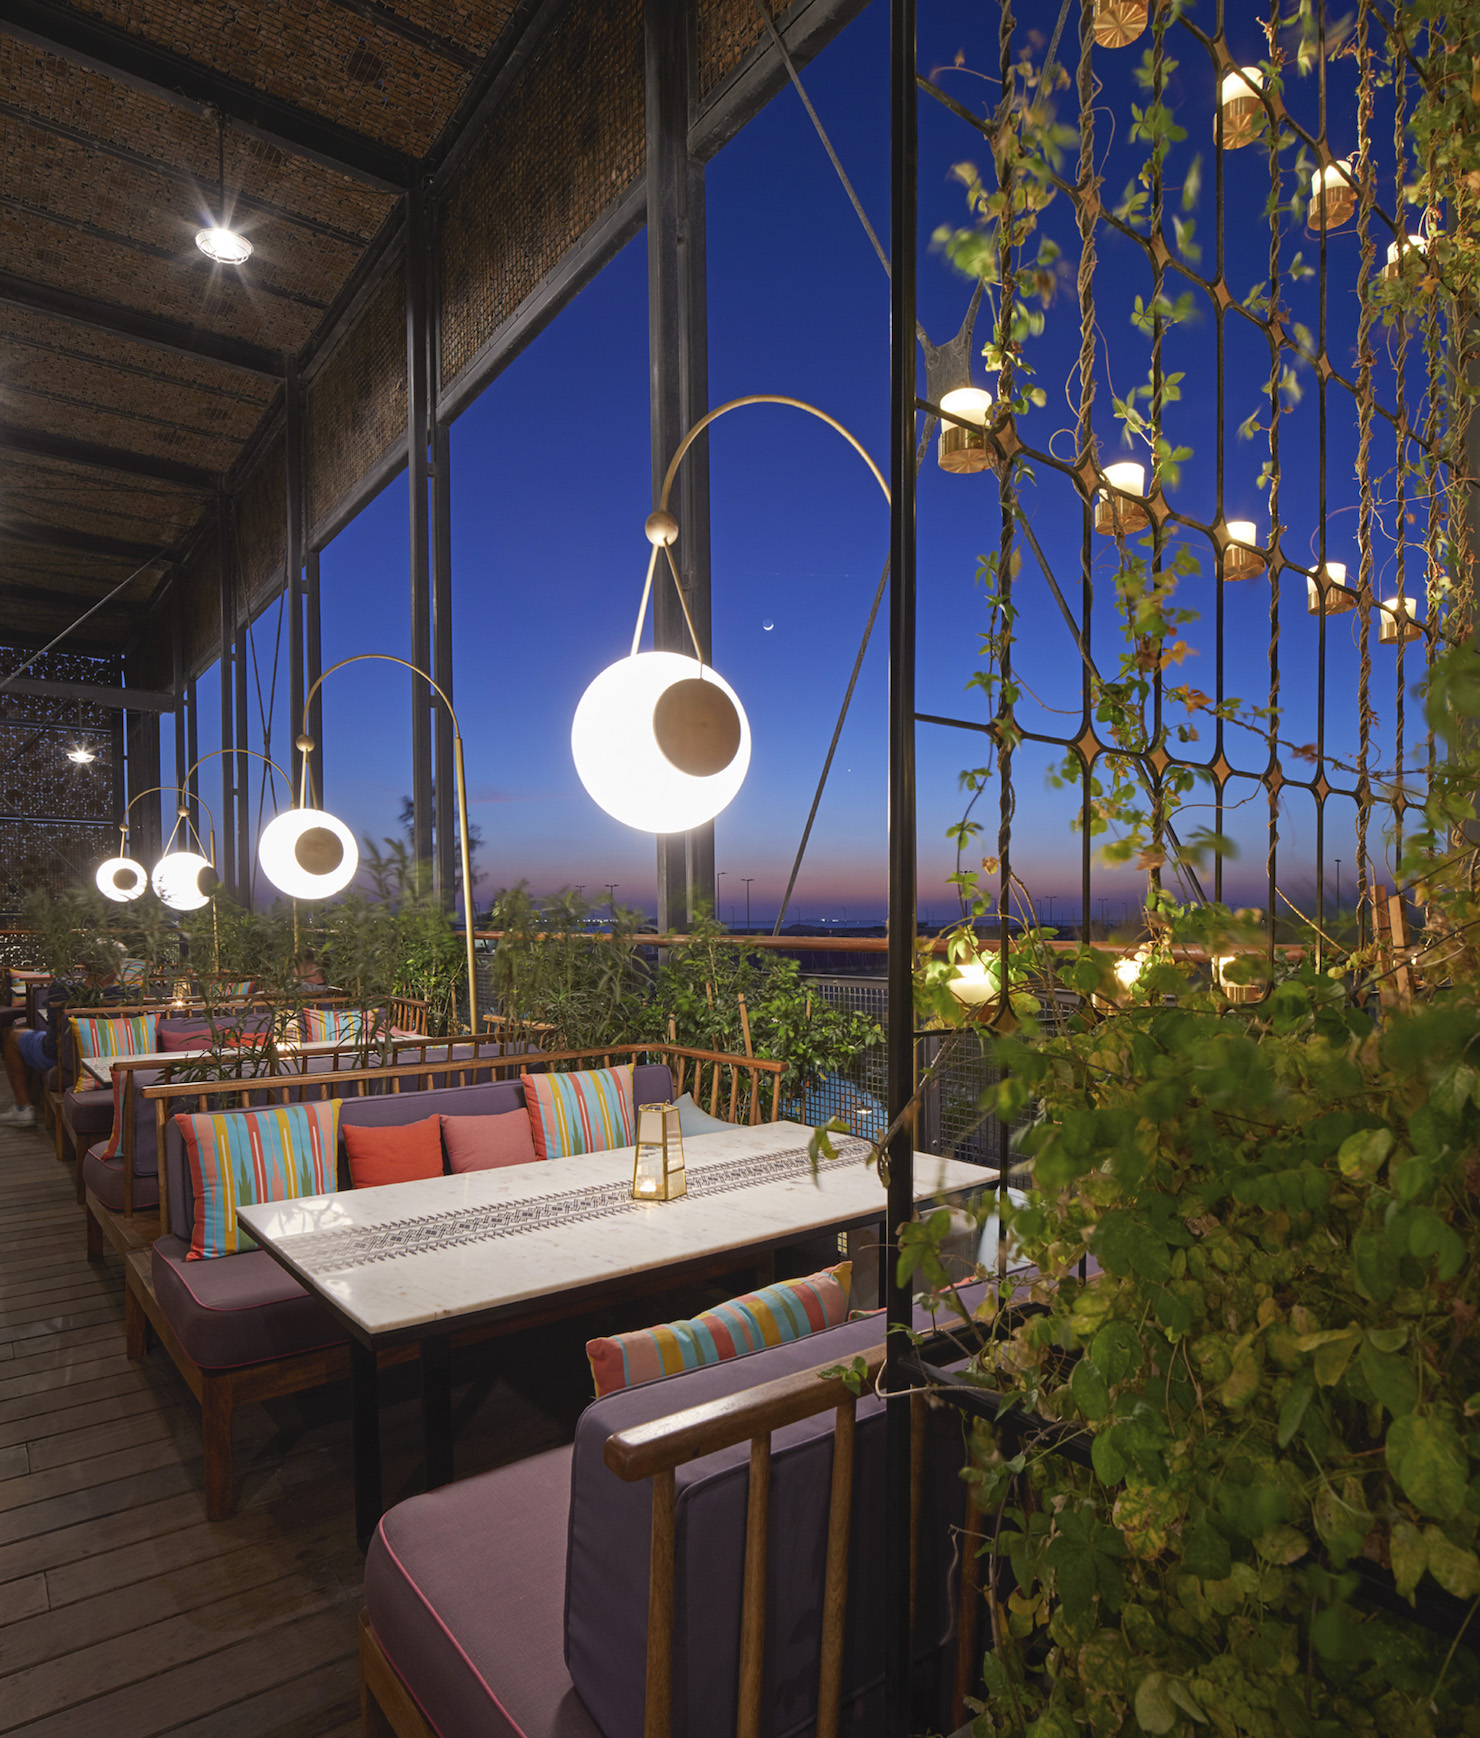 The restaurant terrace with a view of the sunset.